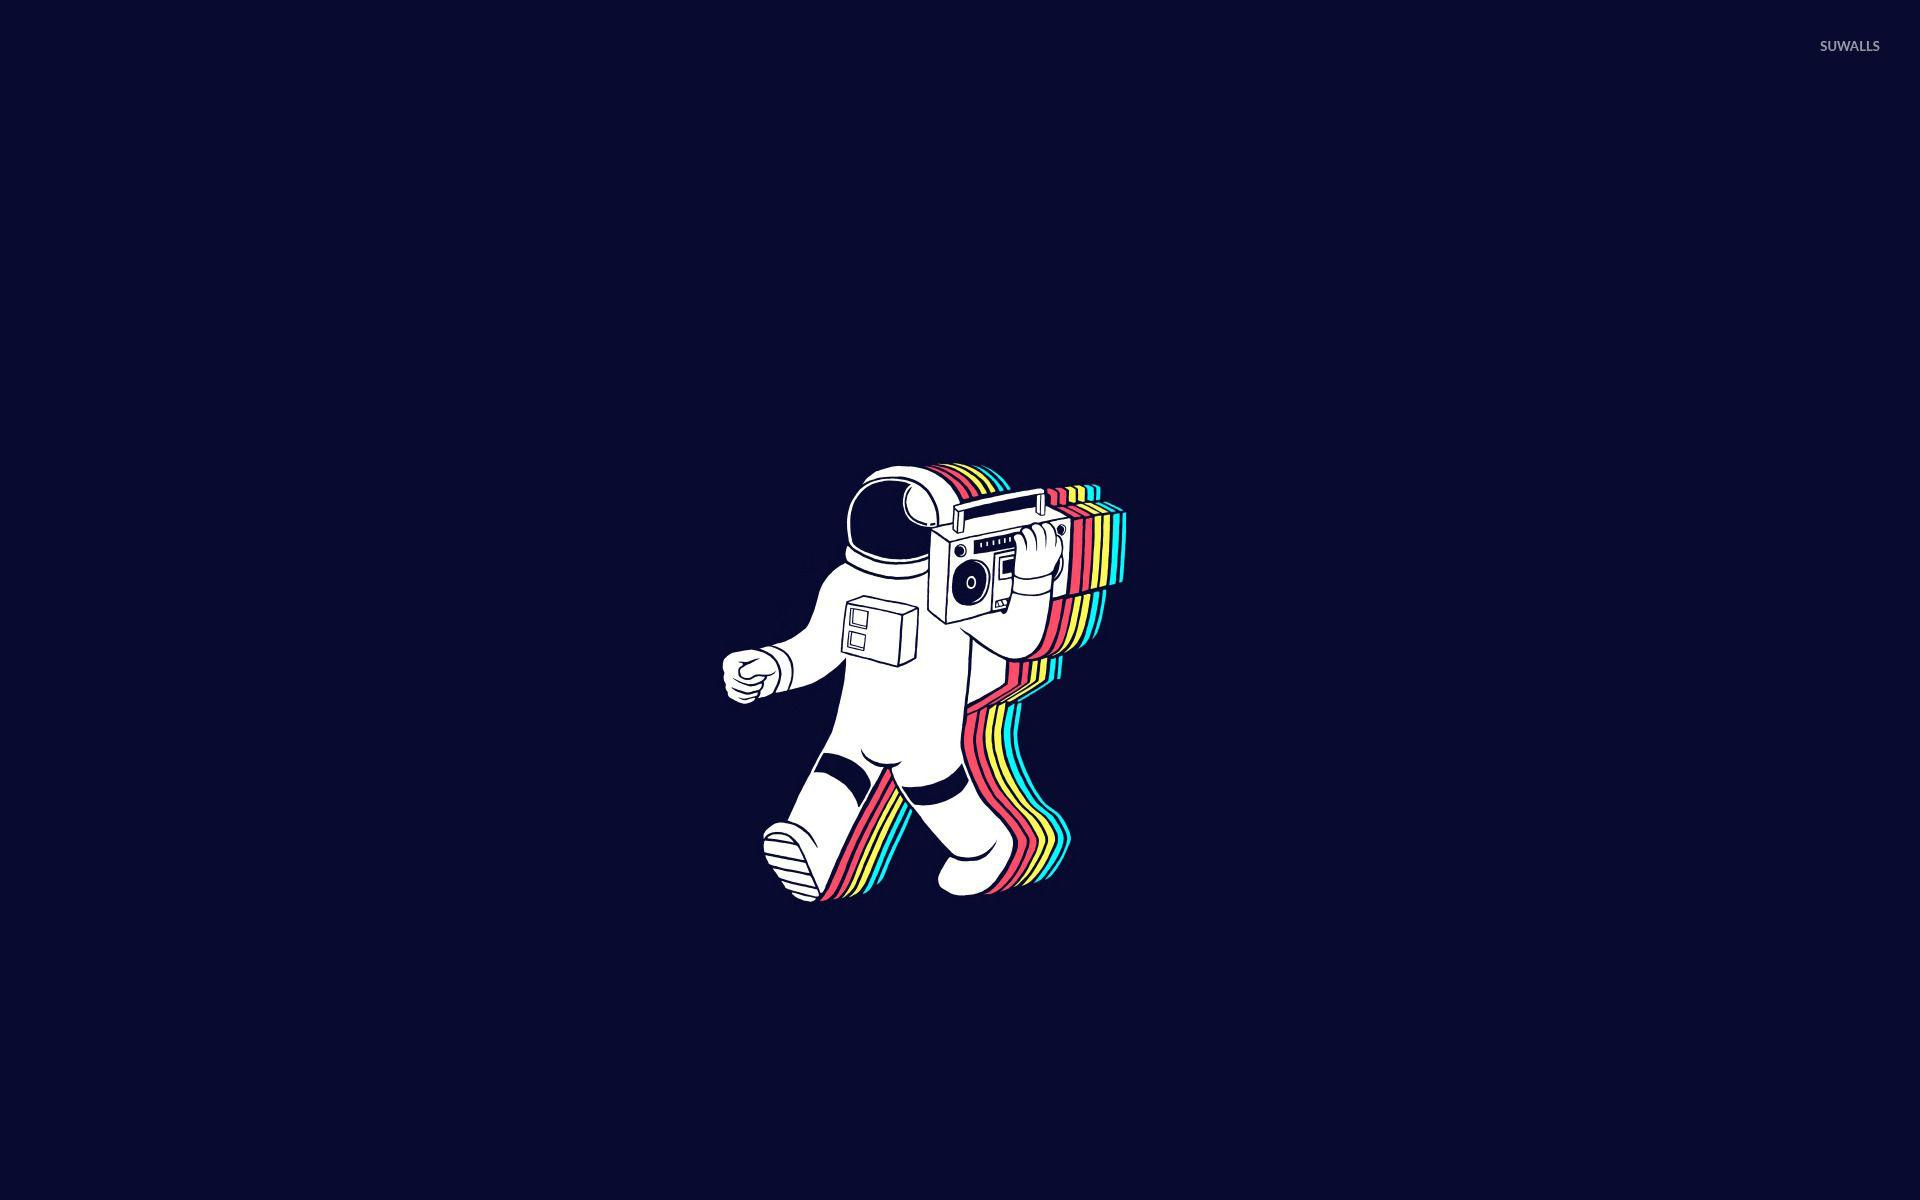 Galaxy Astronaut Wallpaper